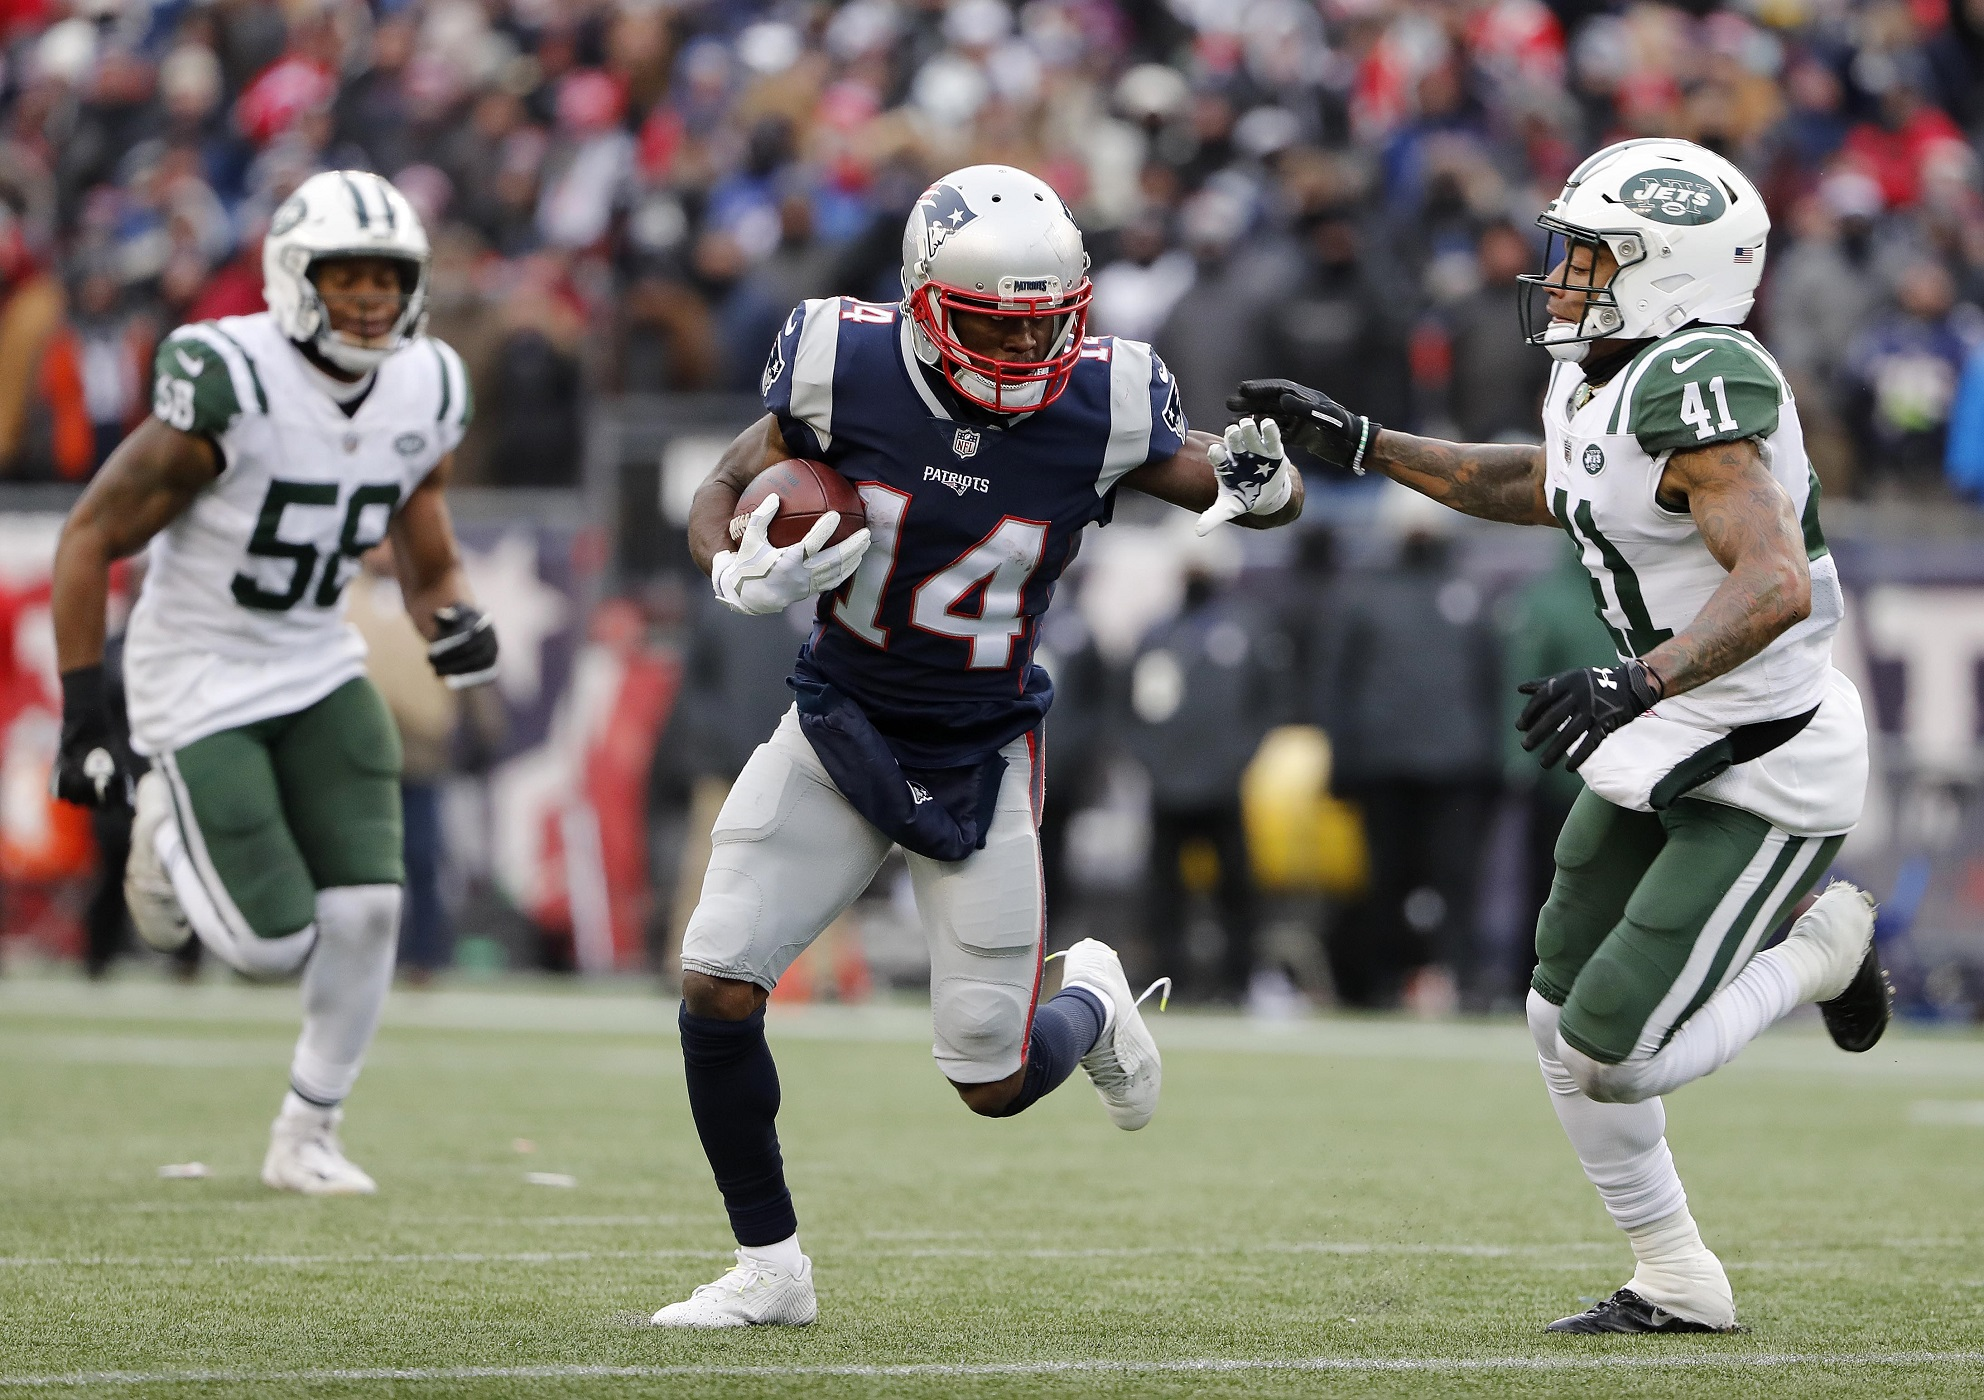 Patriots Cruise Past Jets 26-6, Lock up #1 Seed in AFC